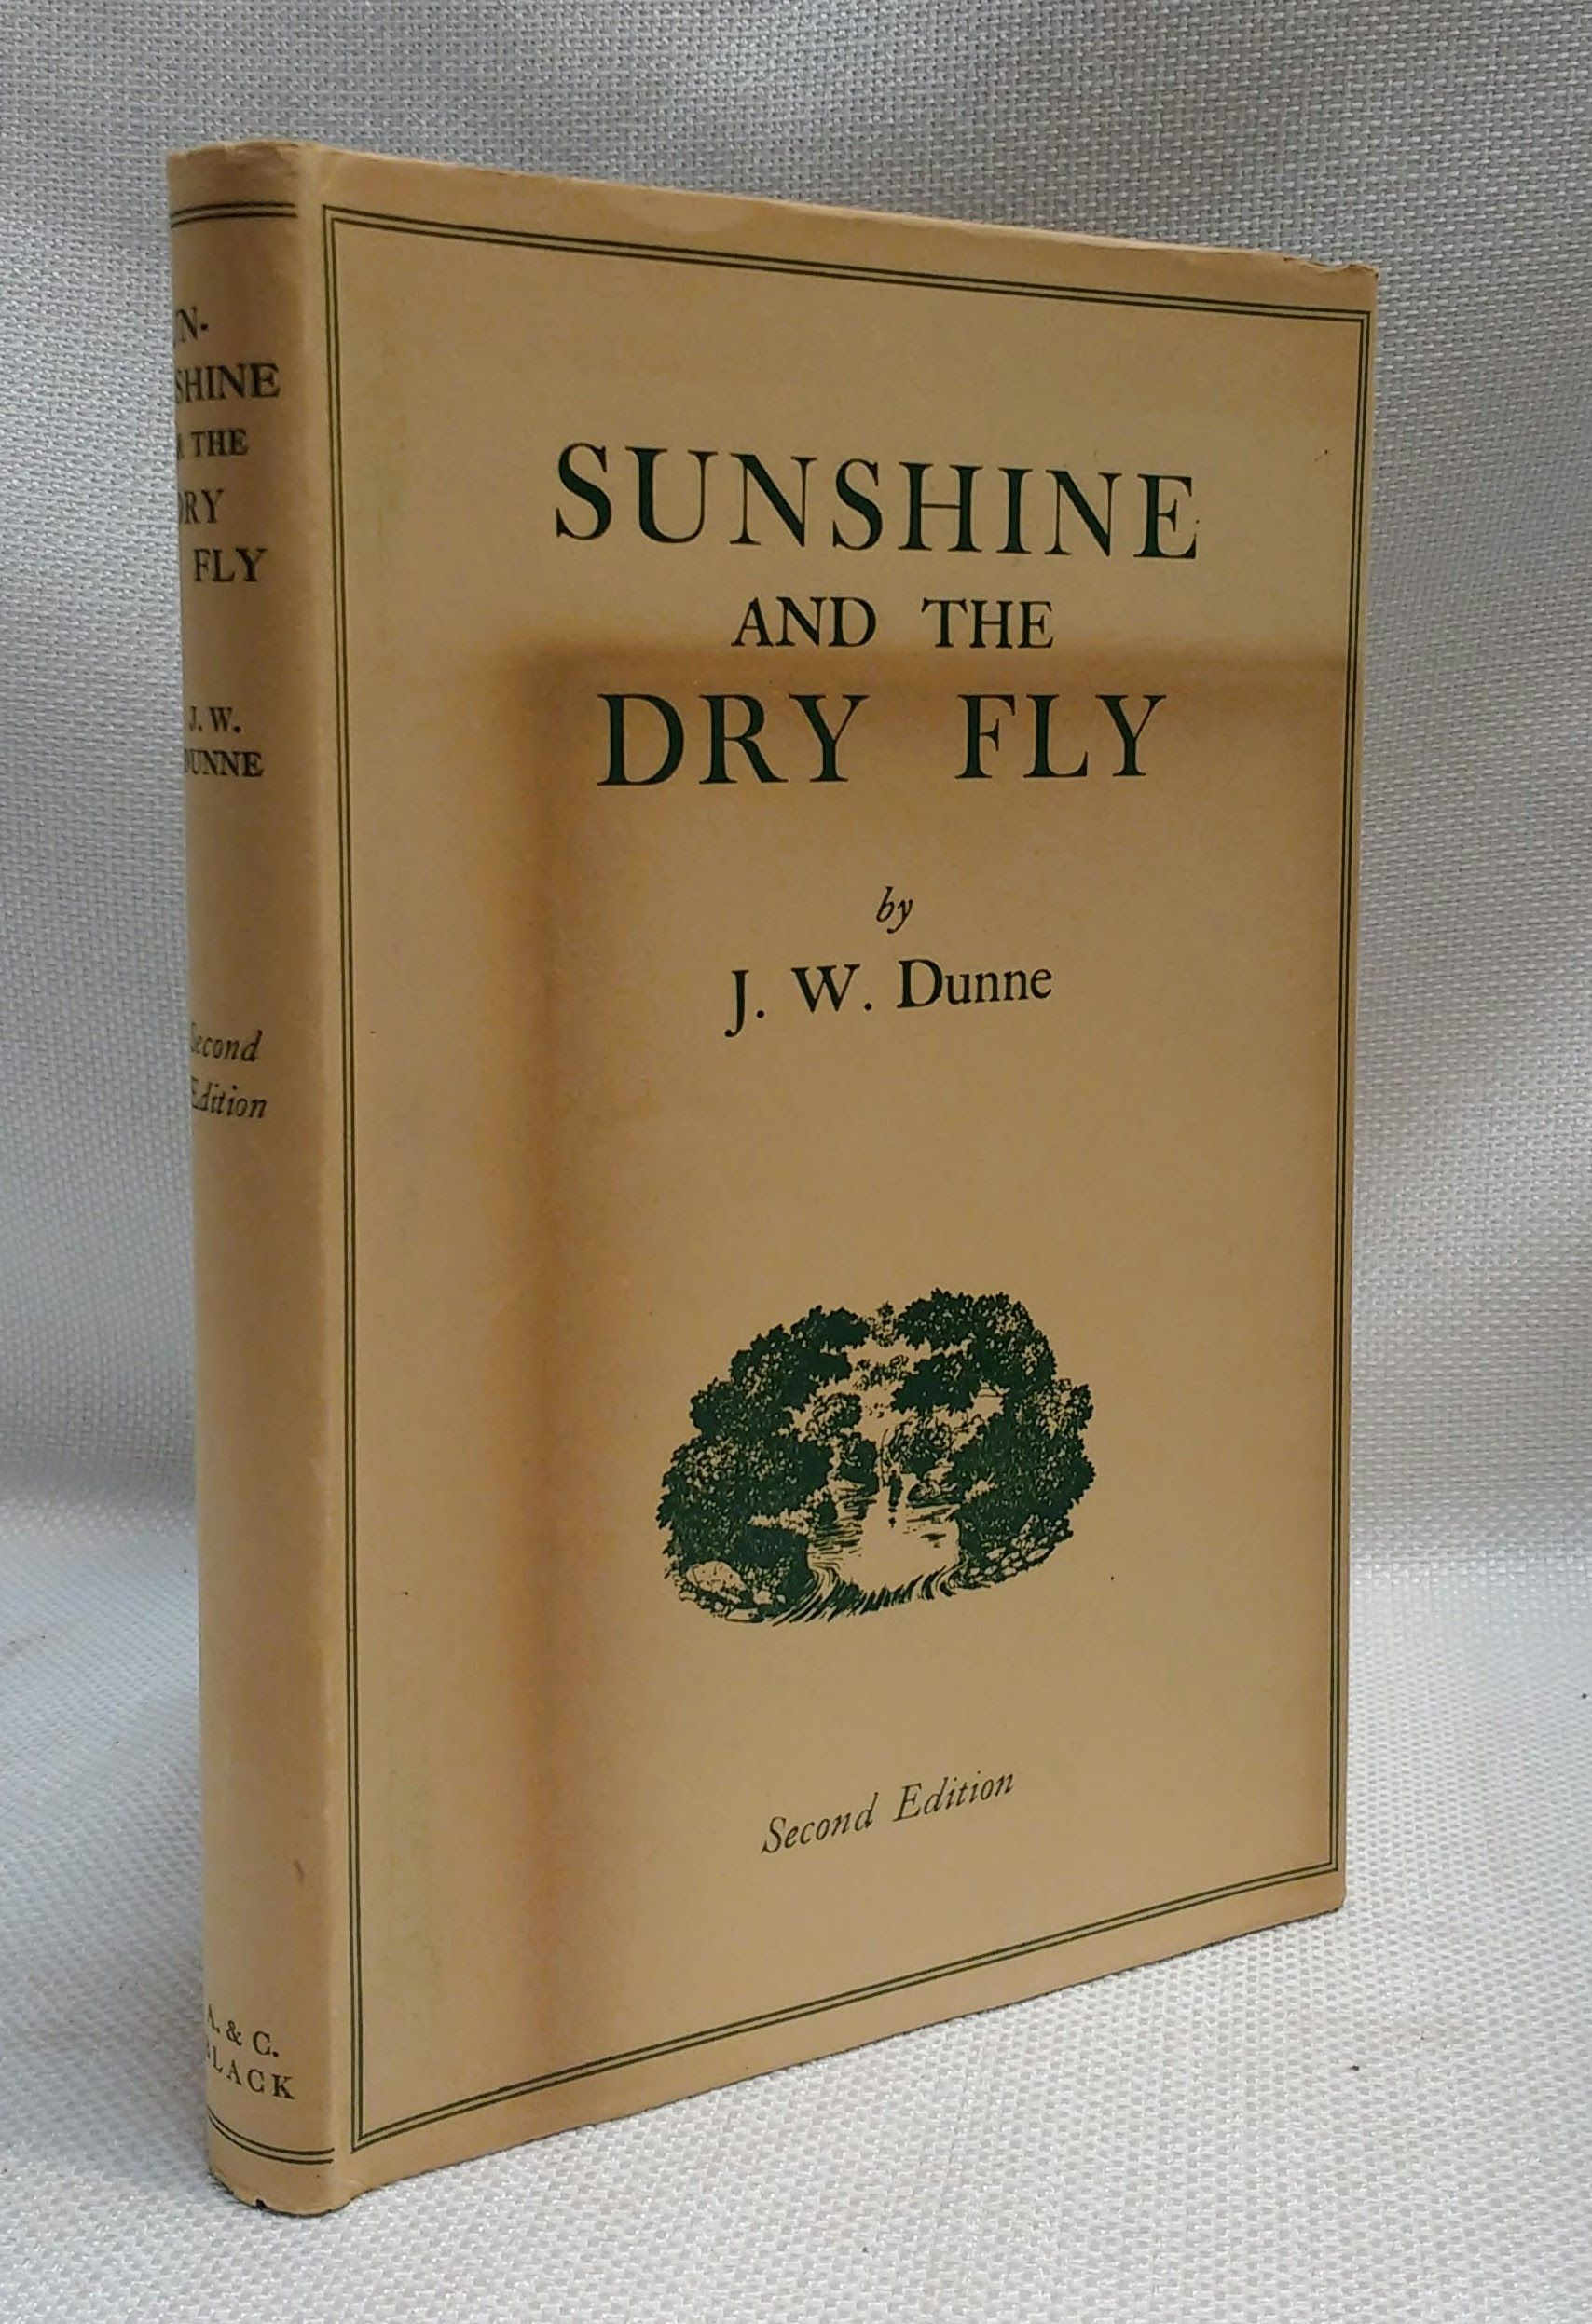 Sunshine and the Dry Fly, J.W. Dunne